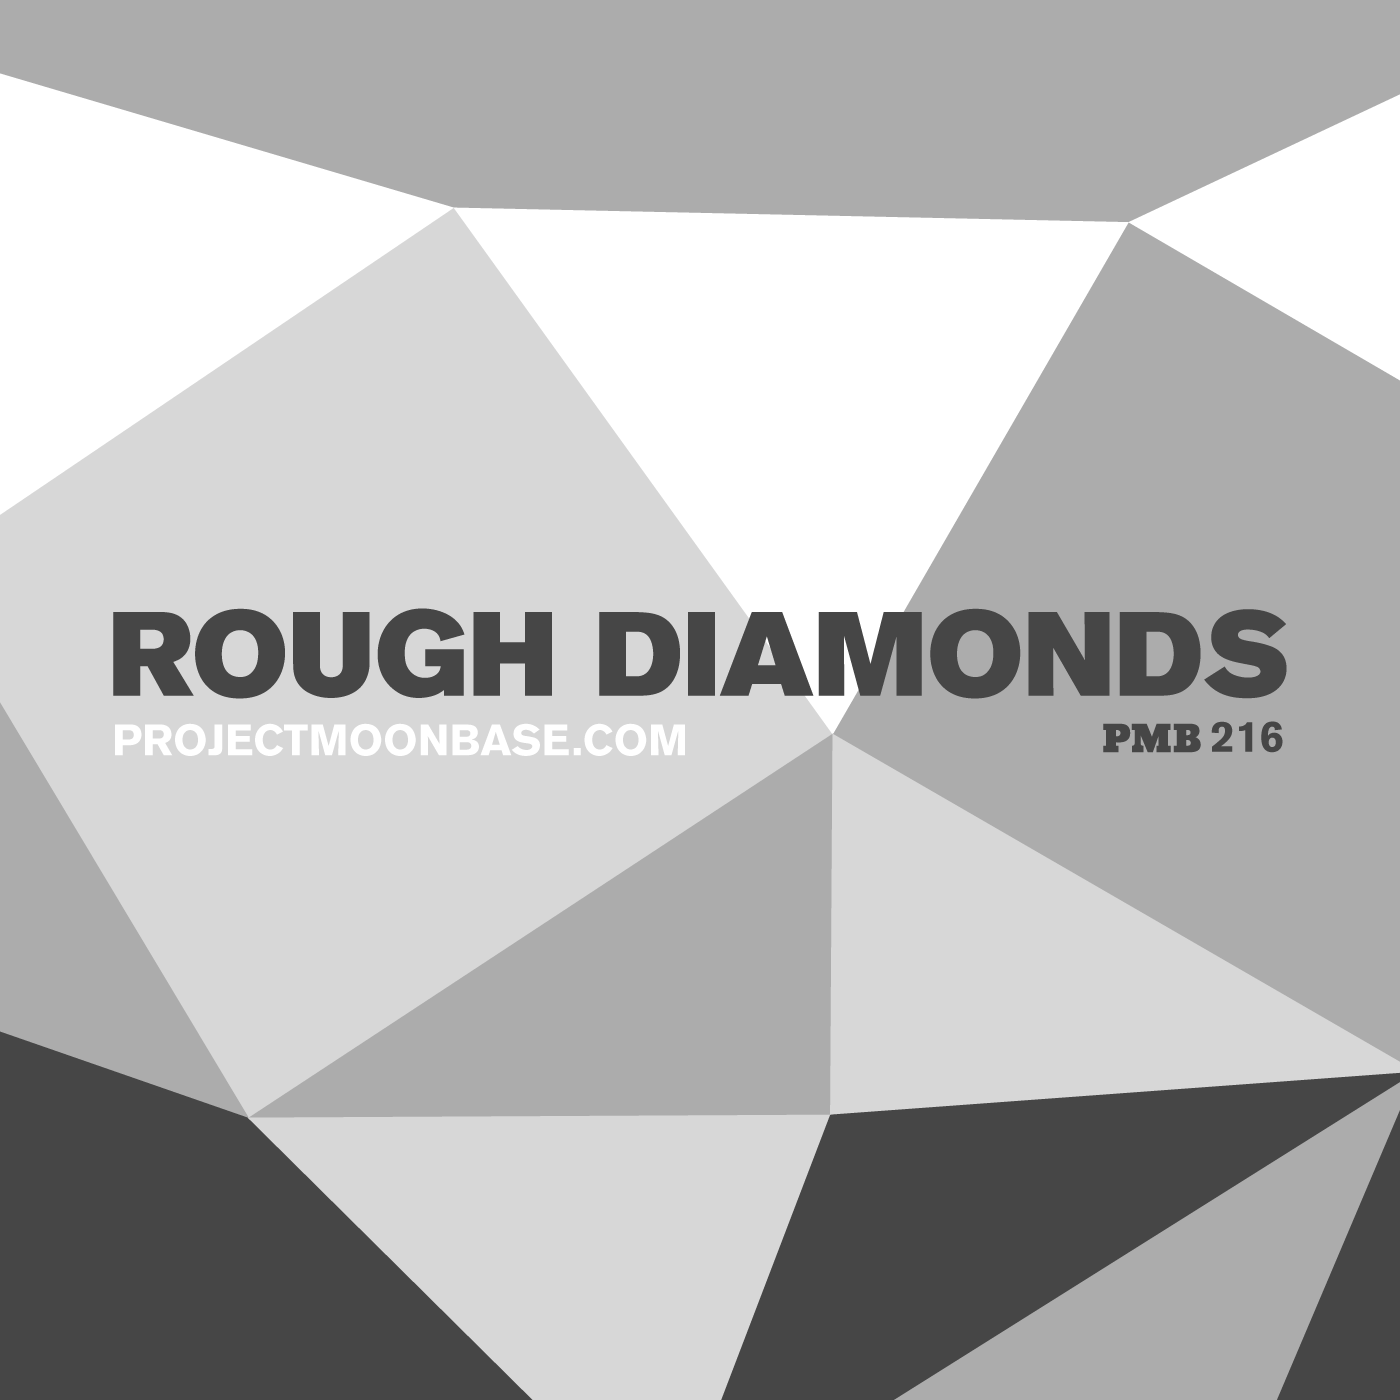 PMB216: Rough Diamonds